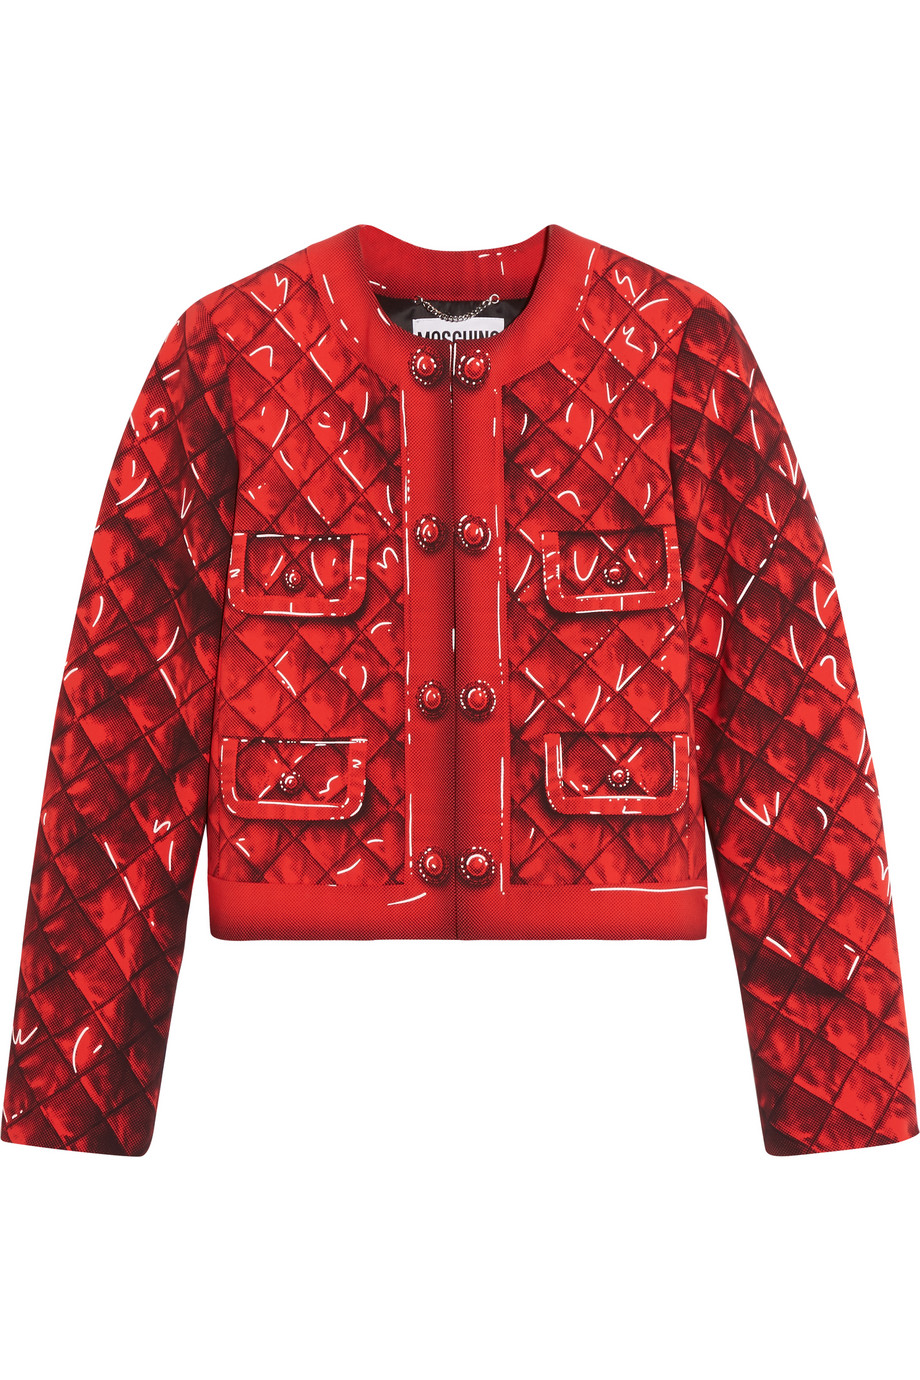 Moschino Printed Crepe Jacket, Red, Women's, Size: 42